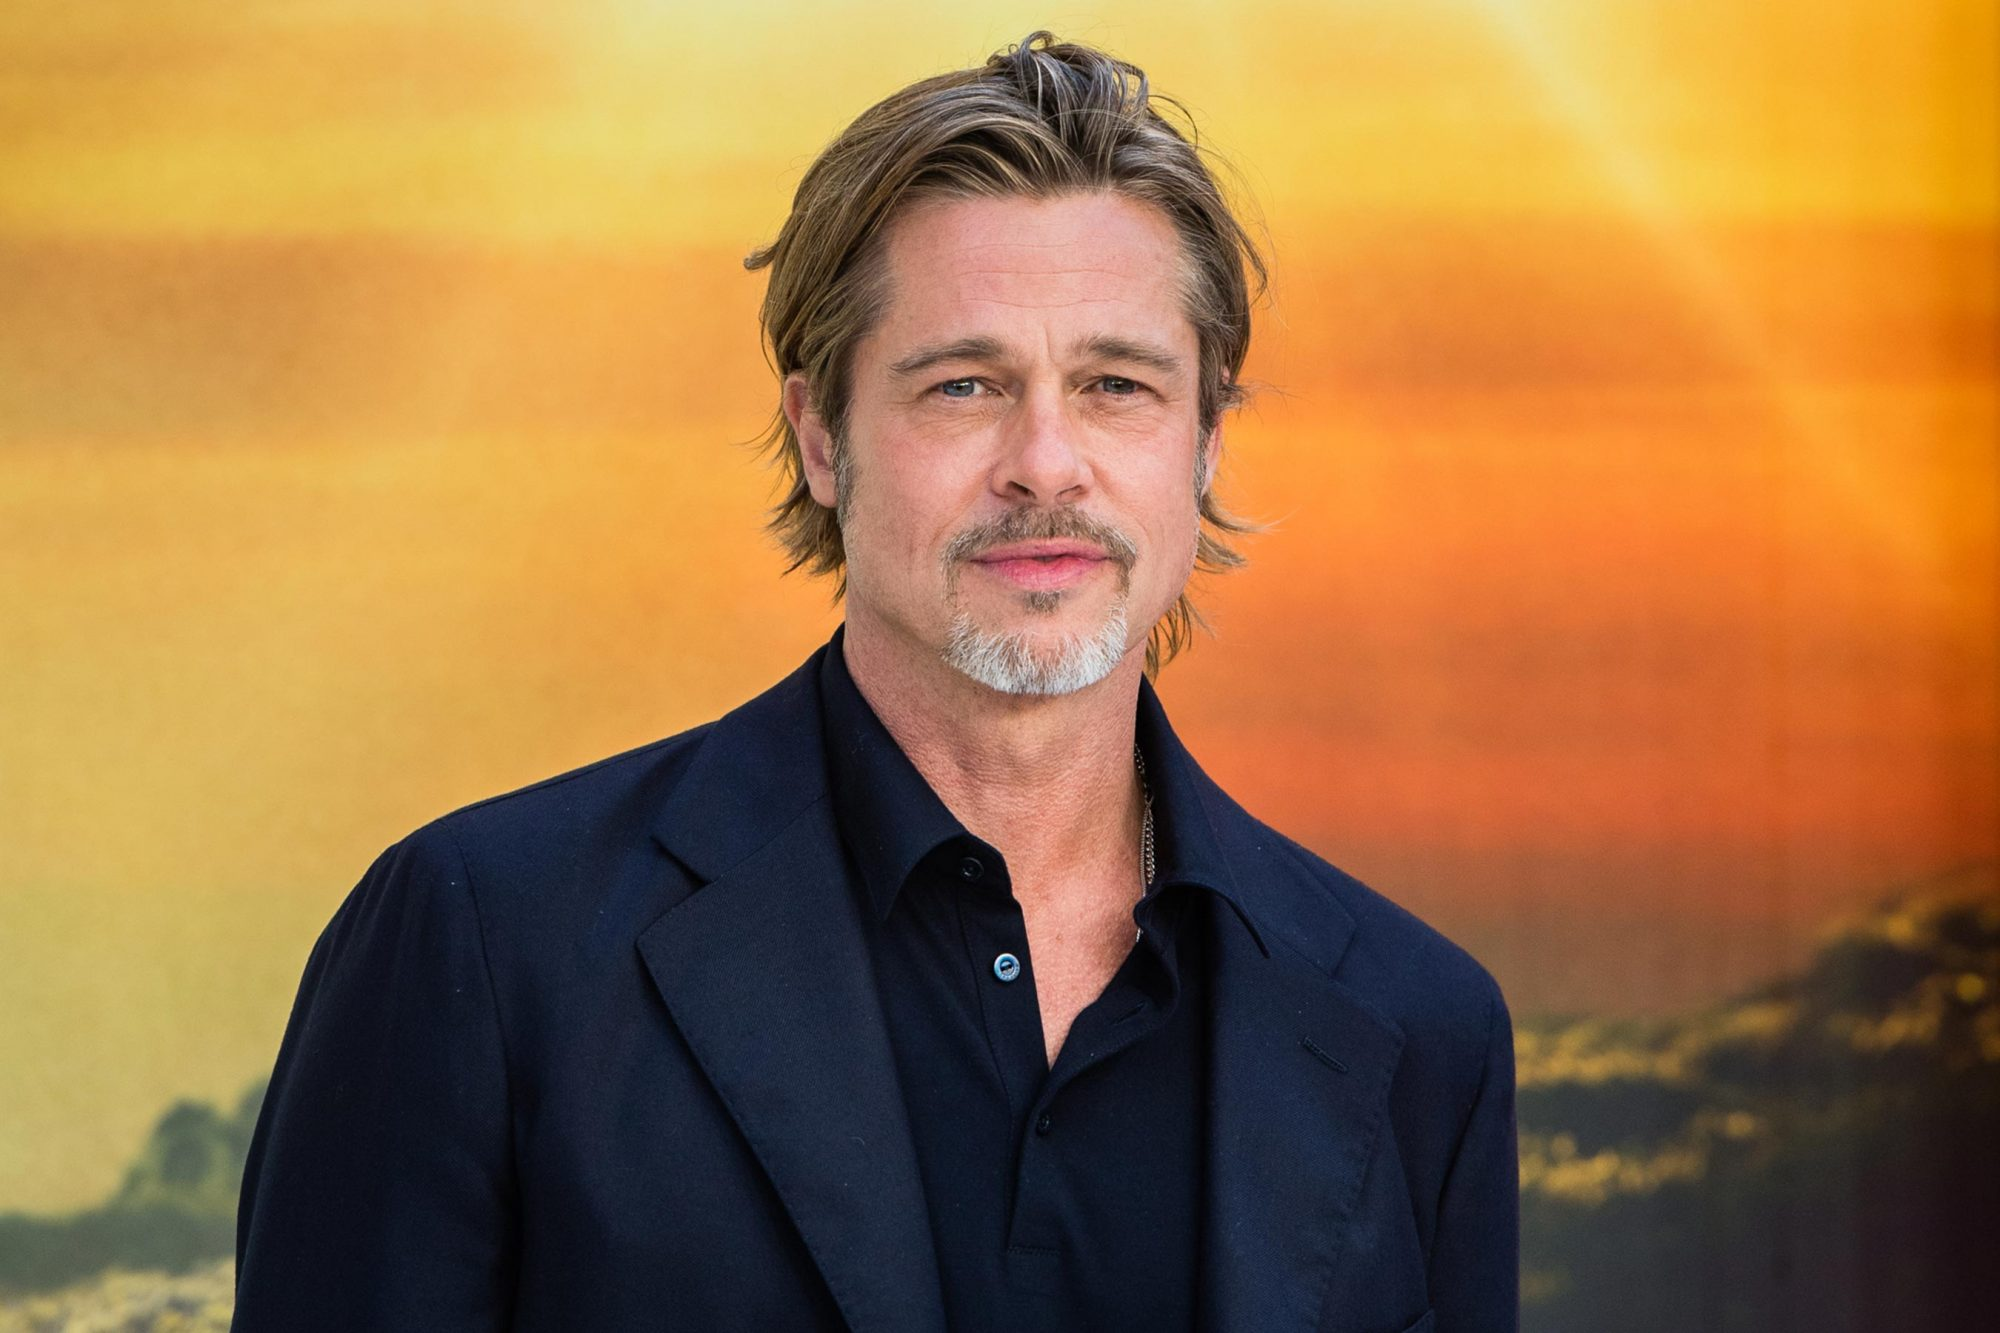 Ad Astra S Brad Pitt Talks Oscars Once Upon A Time In Hollywood And Retirement Rumors Ew Com